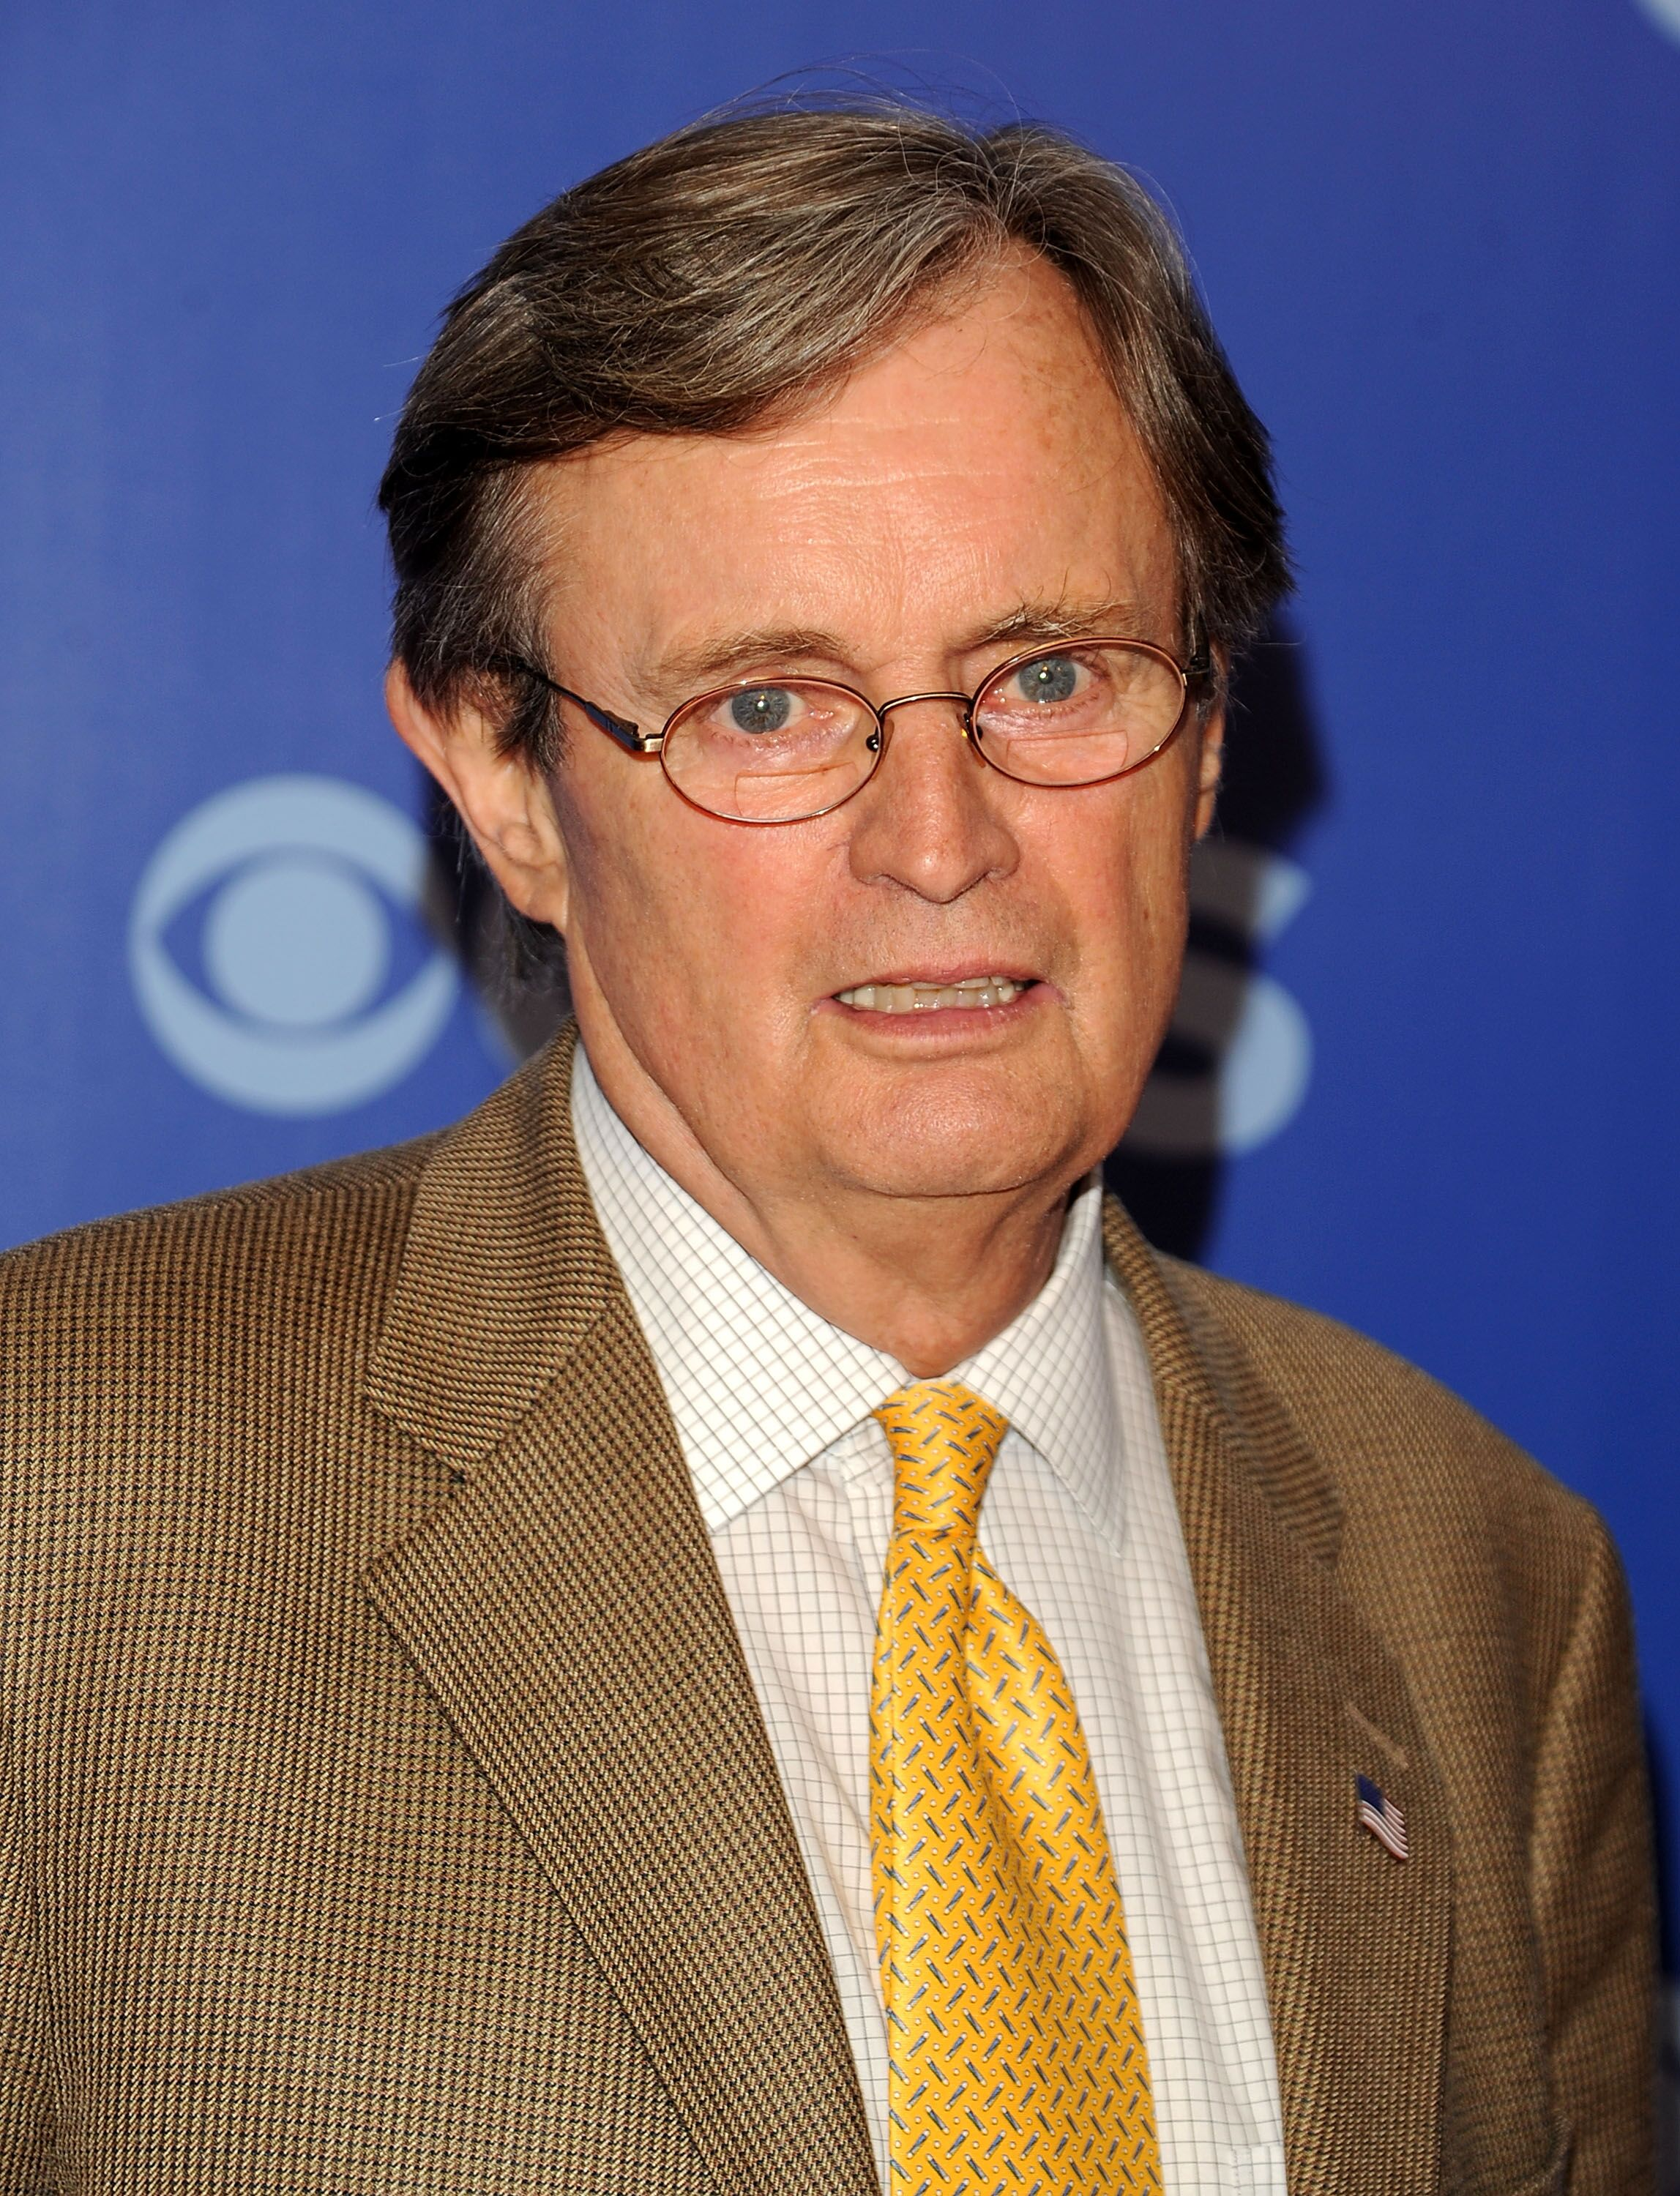 David McCallum | Quelle: Getty Images